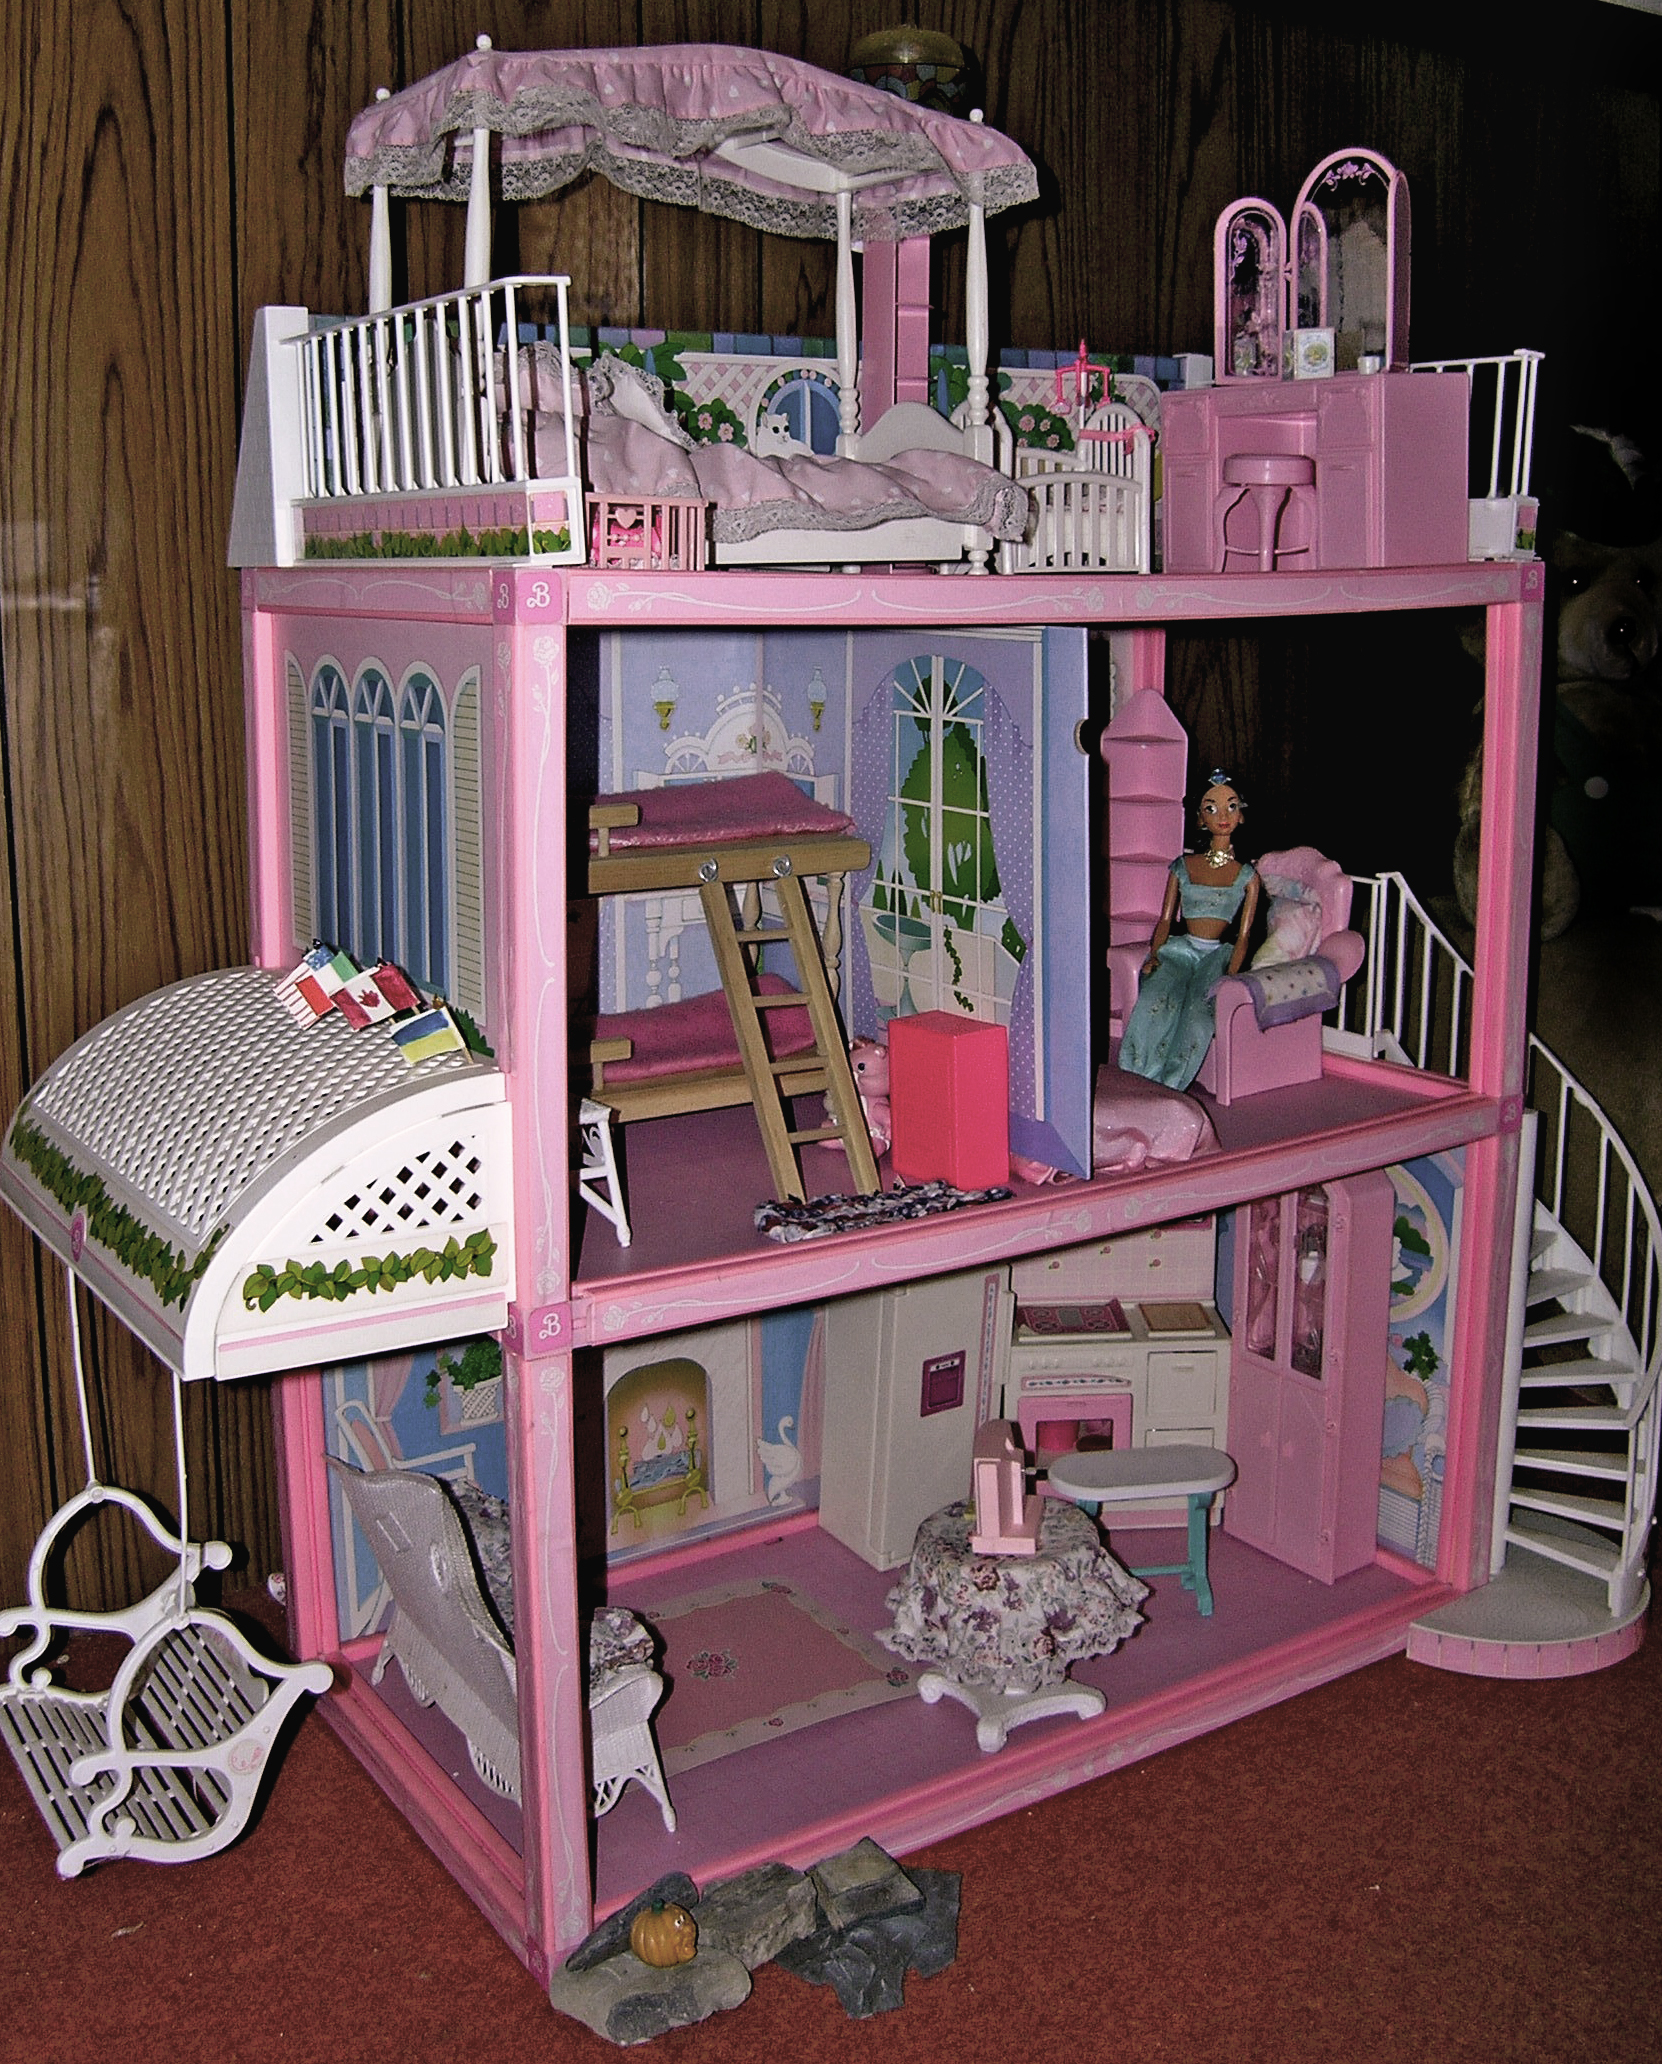 Barbie dollhouse wallpaper wallpapersafari for All barbie house decoration games